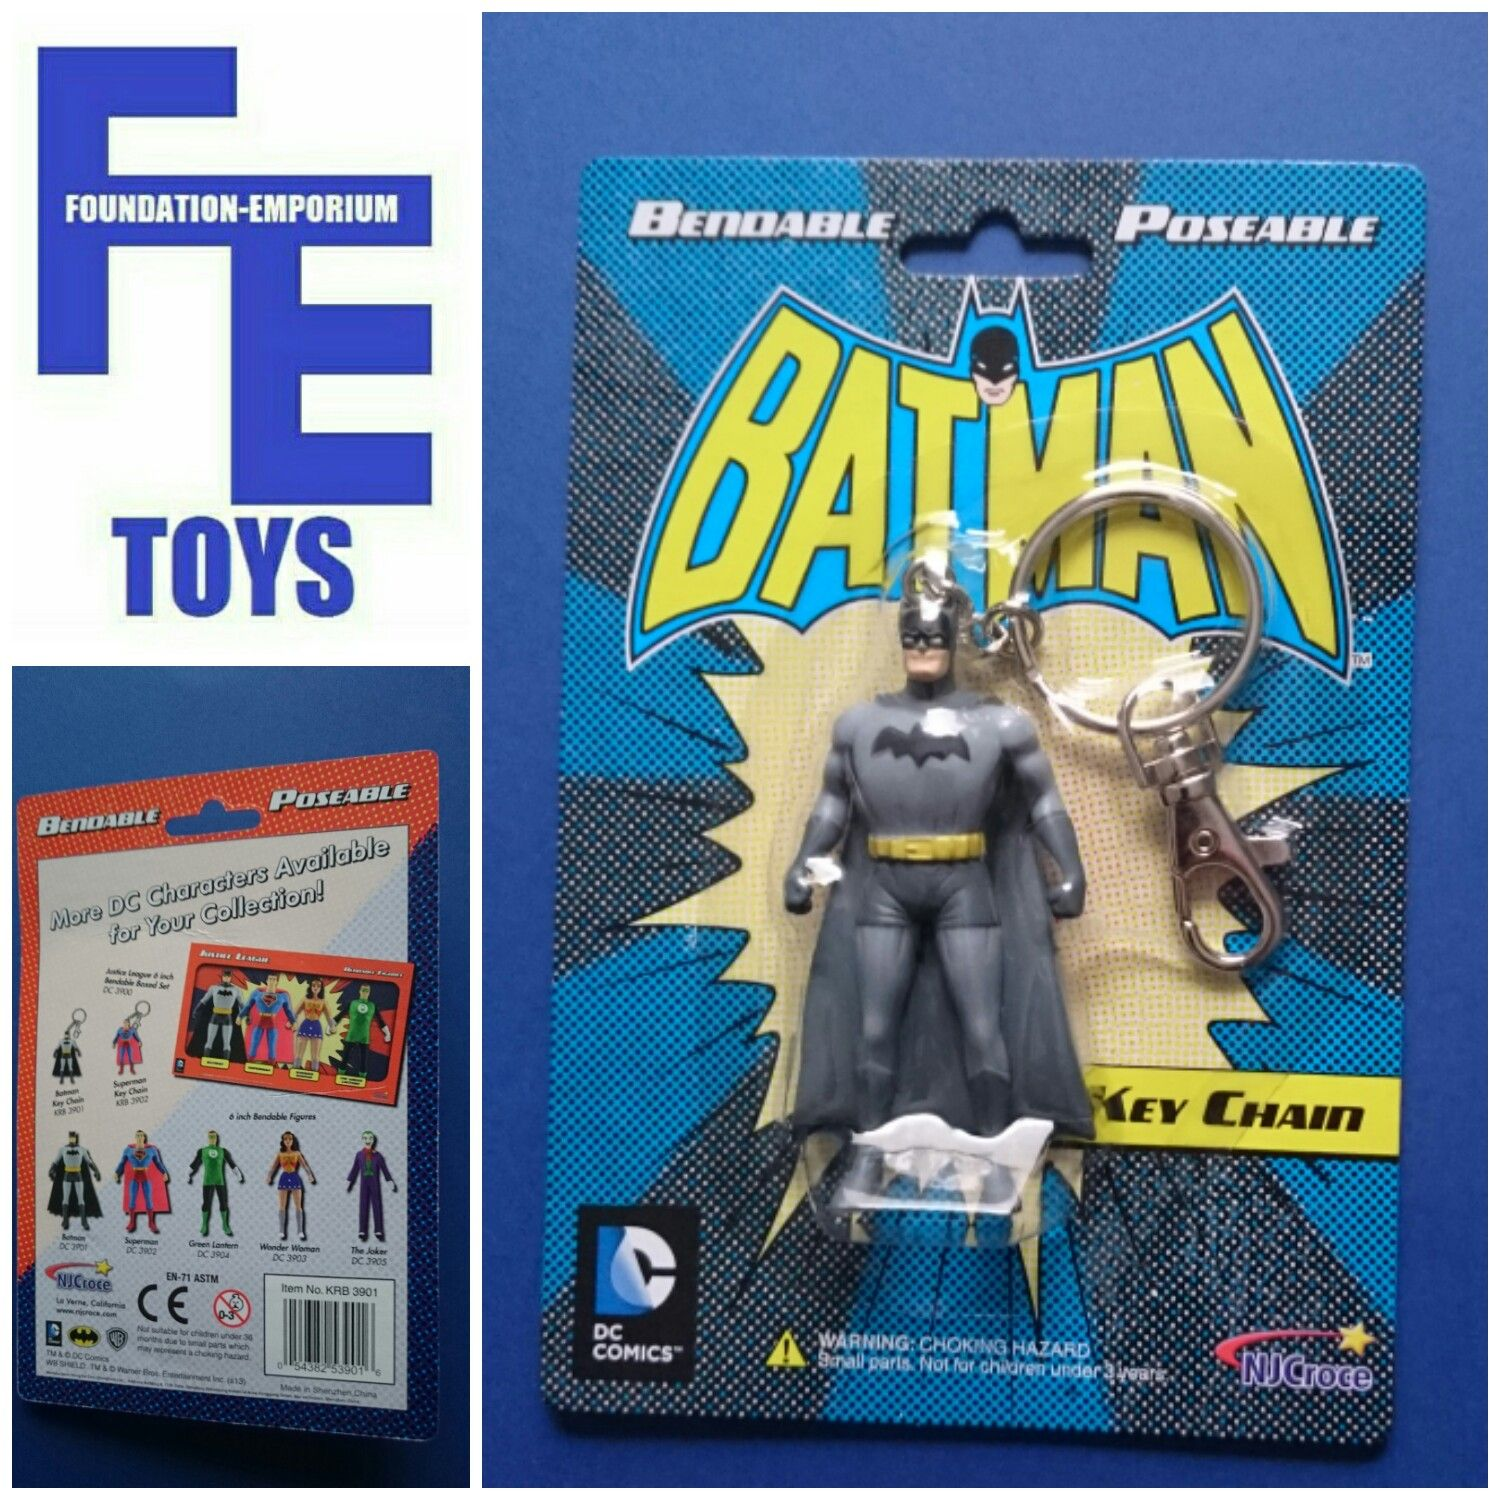 Batman Bendable Keyring with Key Chain - DC Comics KRB 3901 Available now in our Foundation-Emporium Toys eBay Shop https://goo.gl/EtZ3Wm & Amazon Shop http://amzn.to/2iTAtHb